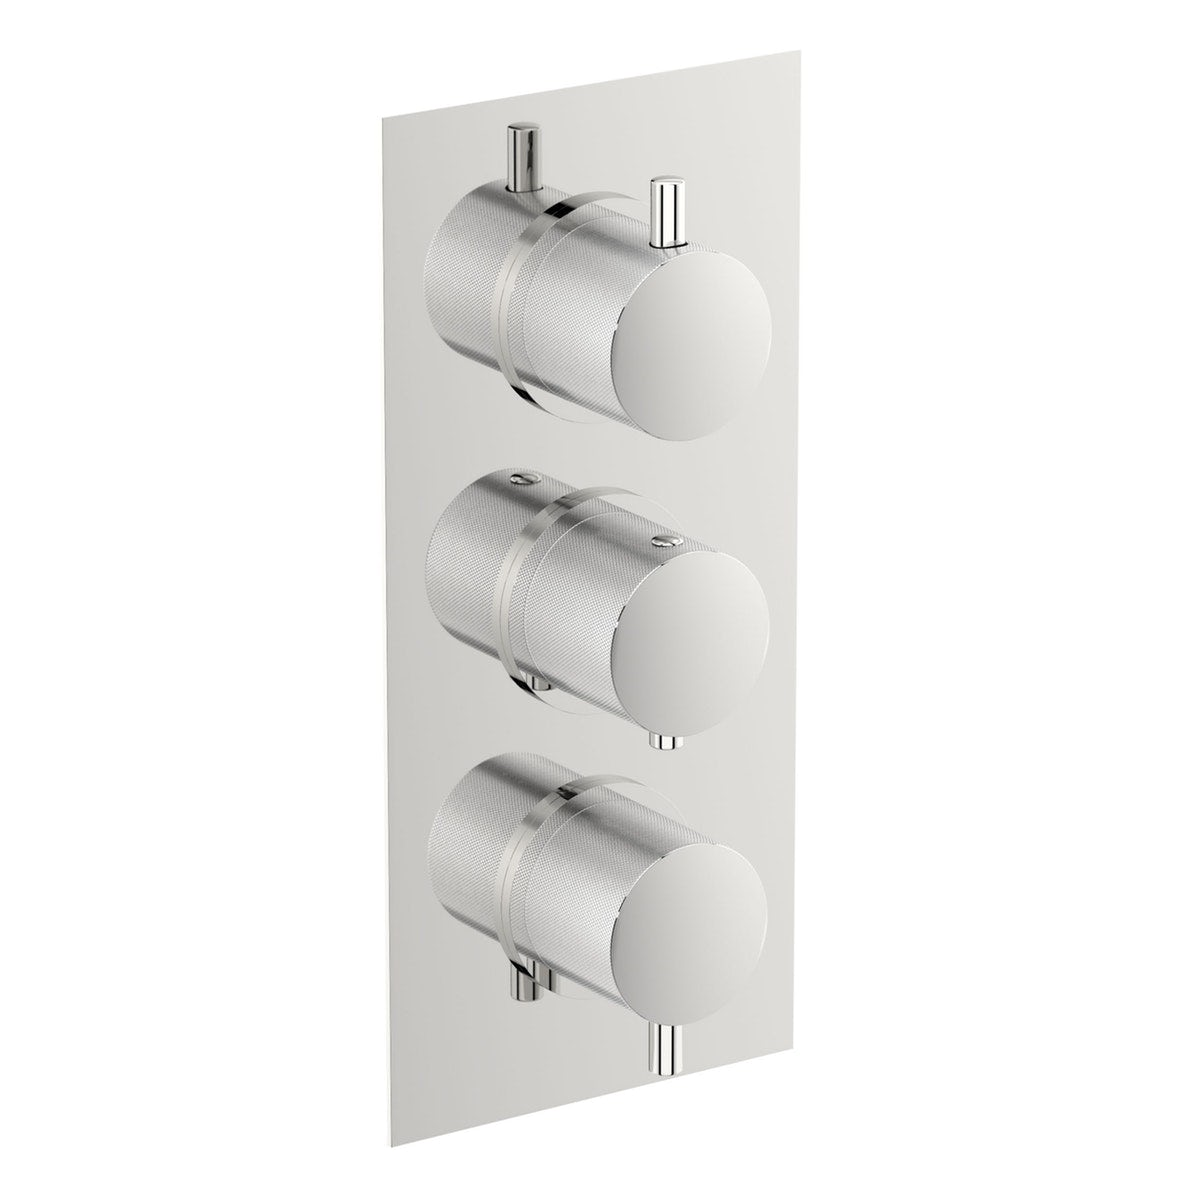 Mode Banks triple shower valve with diverter offer pack